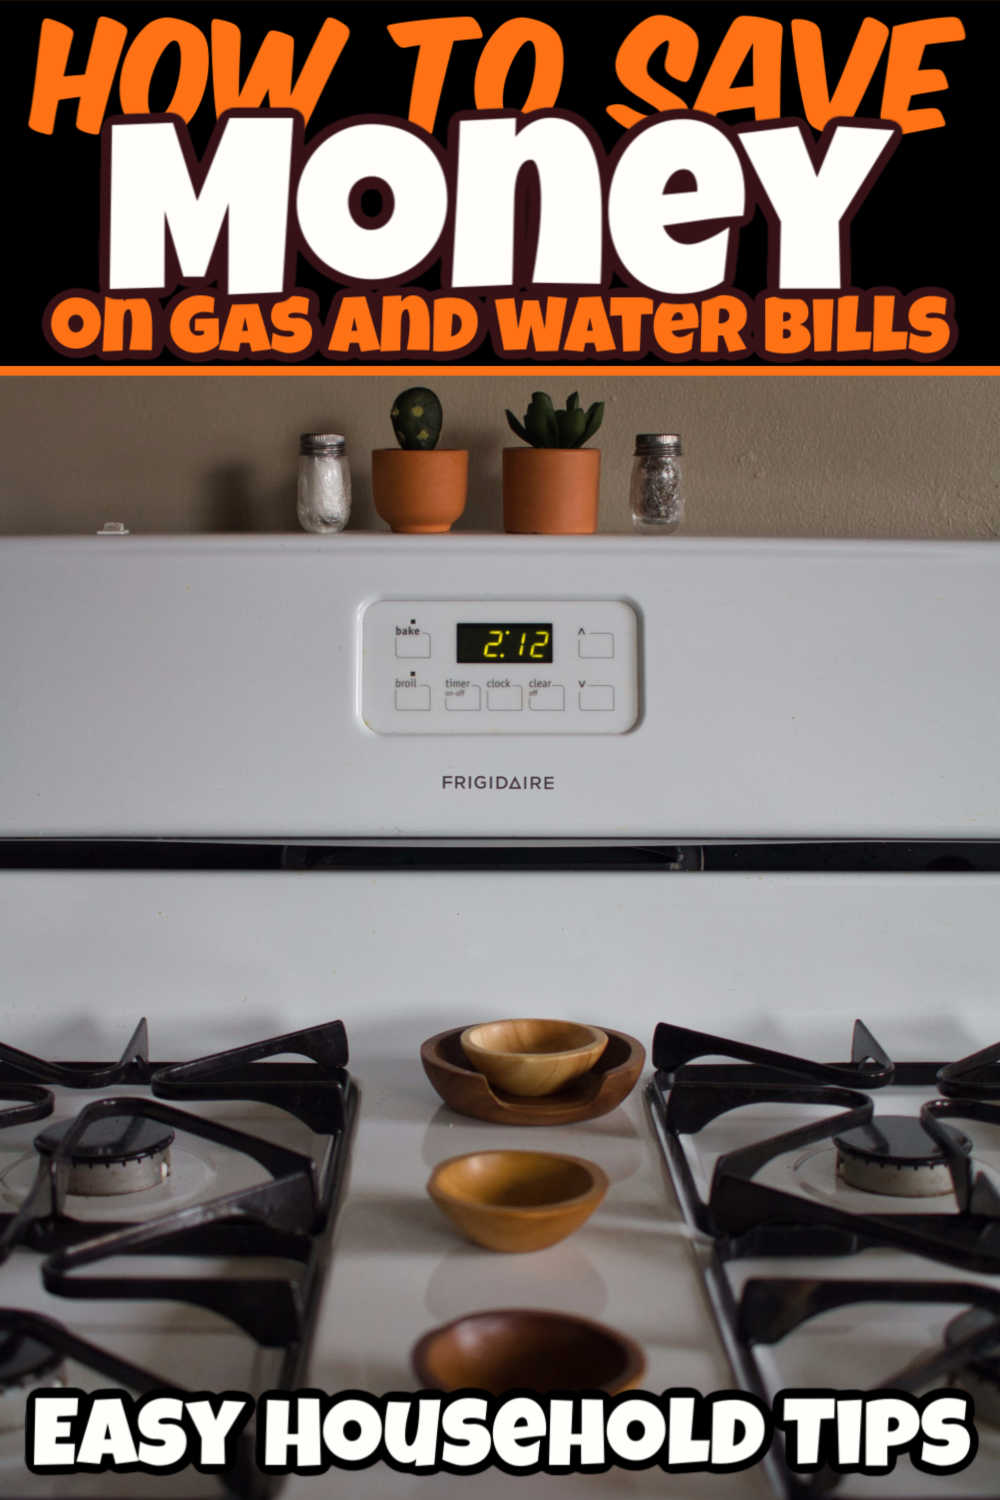 Over 15 Foolproof Ways on How to Save Money on Gas and Water Bills!